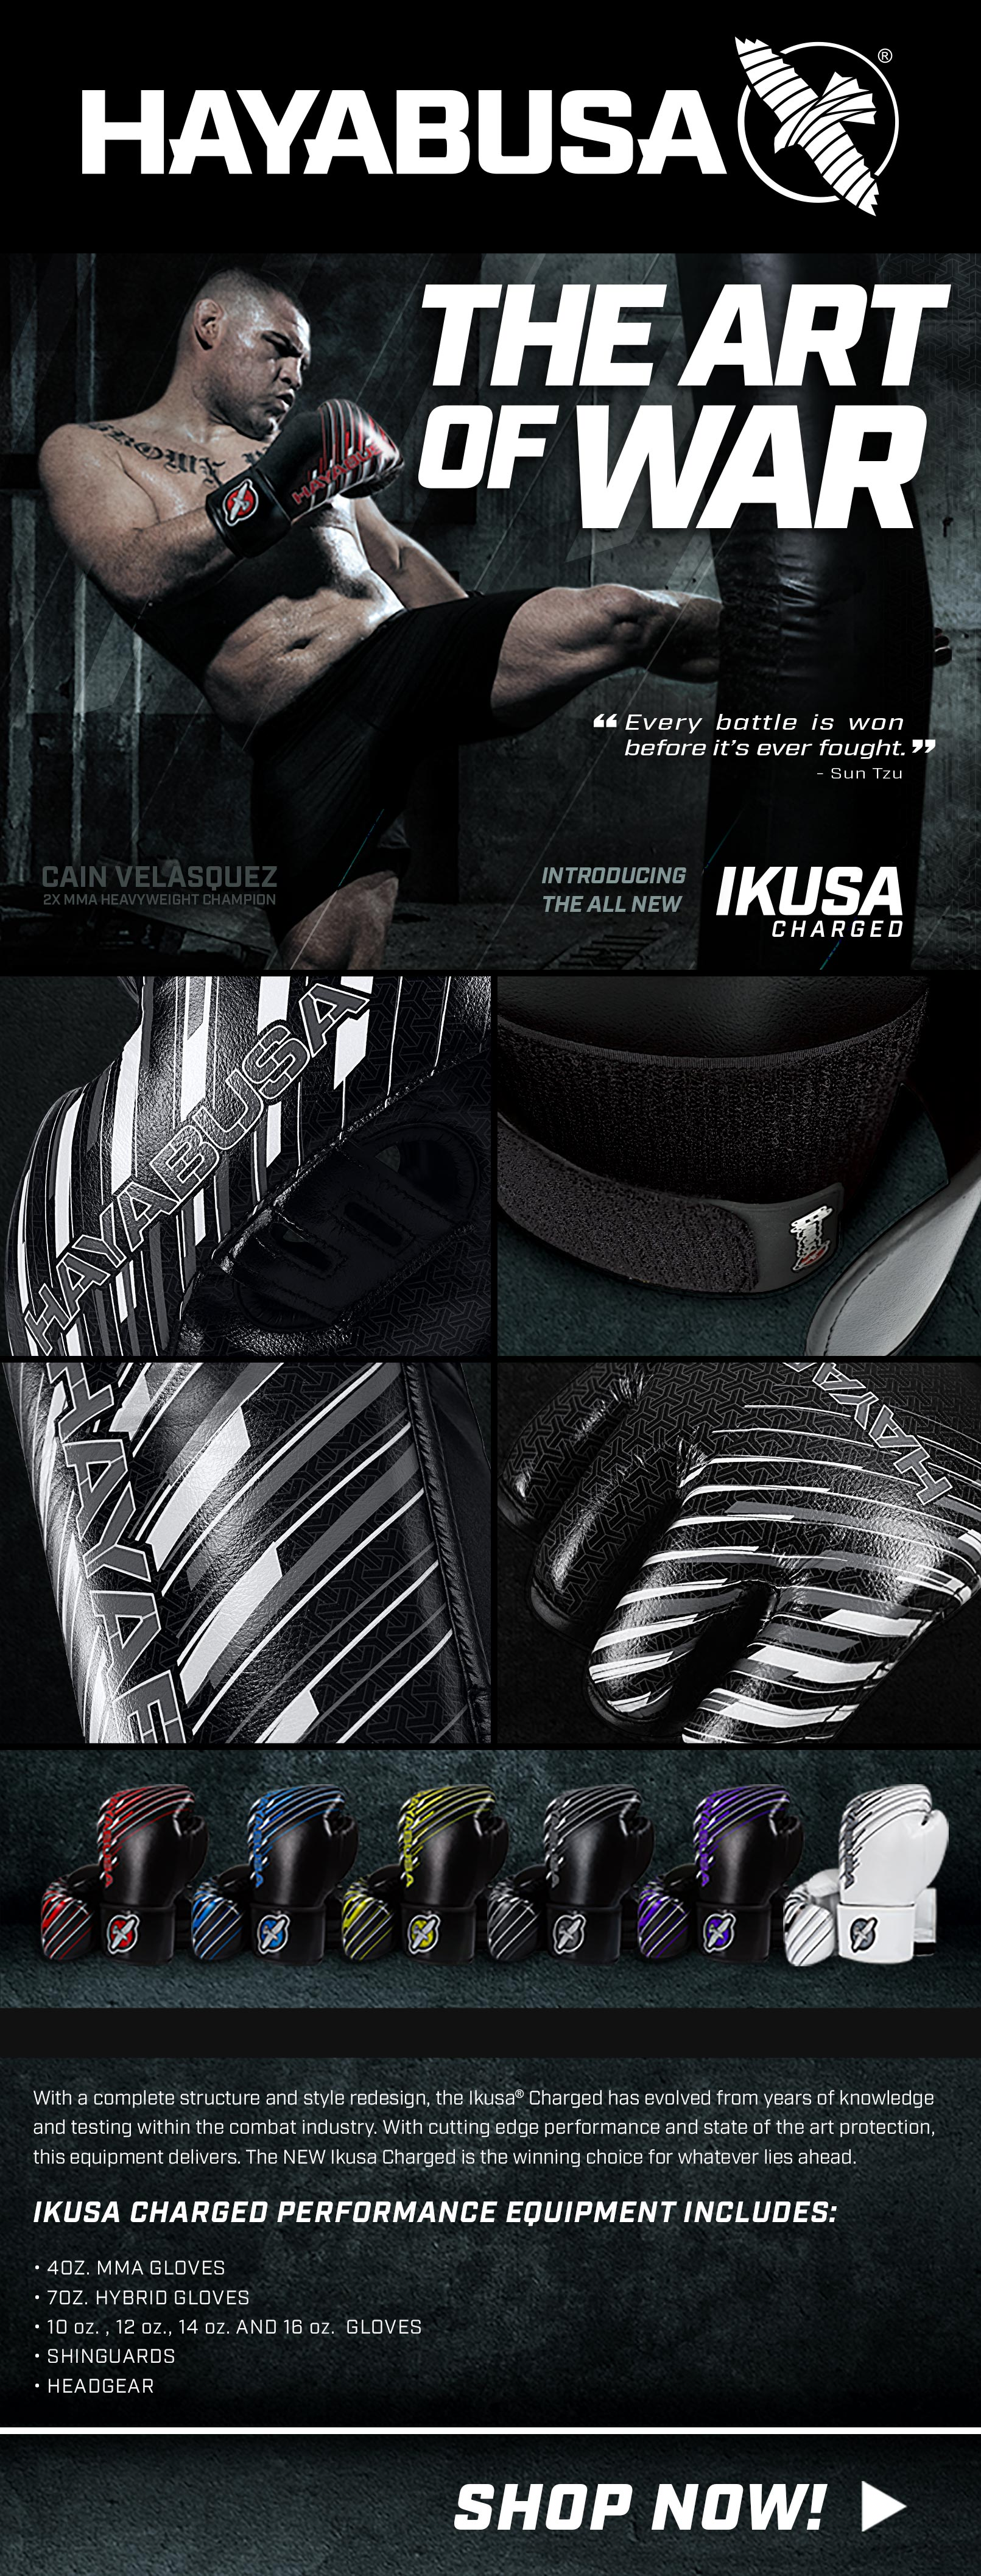 Ikusa Charged - Consumer Newsletter